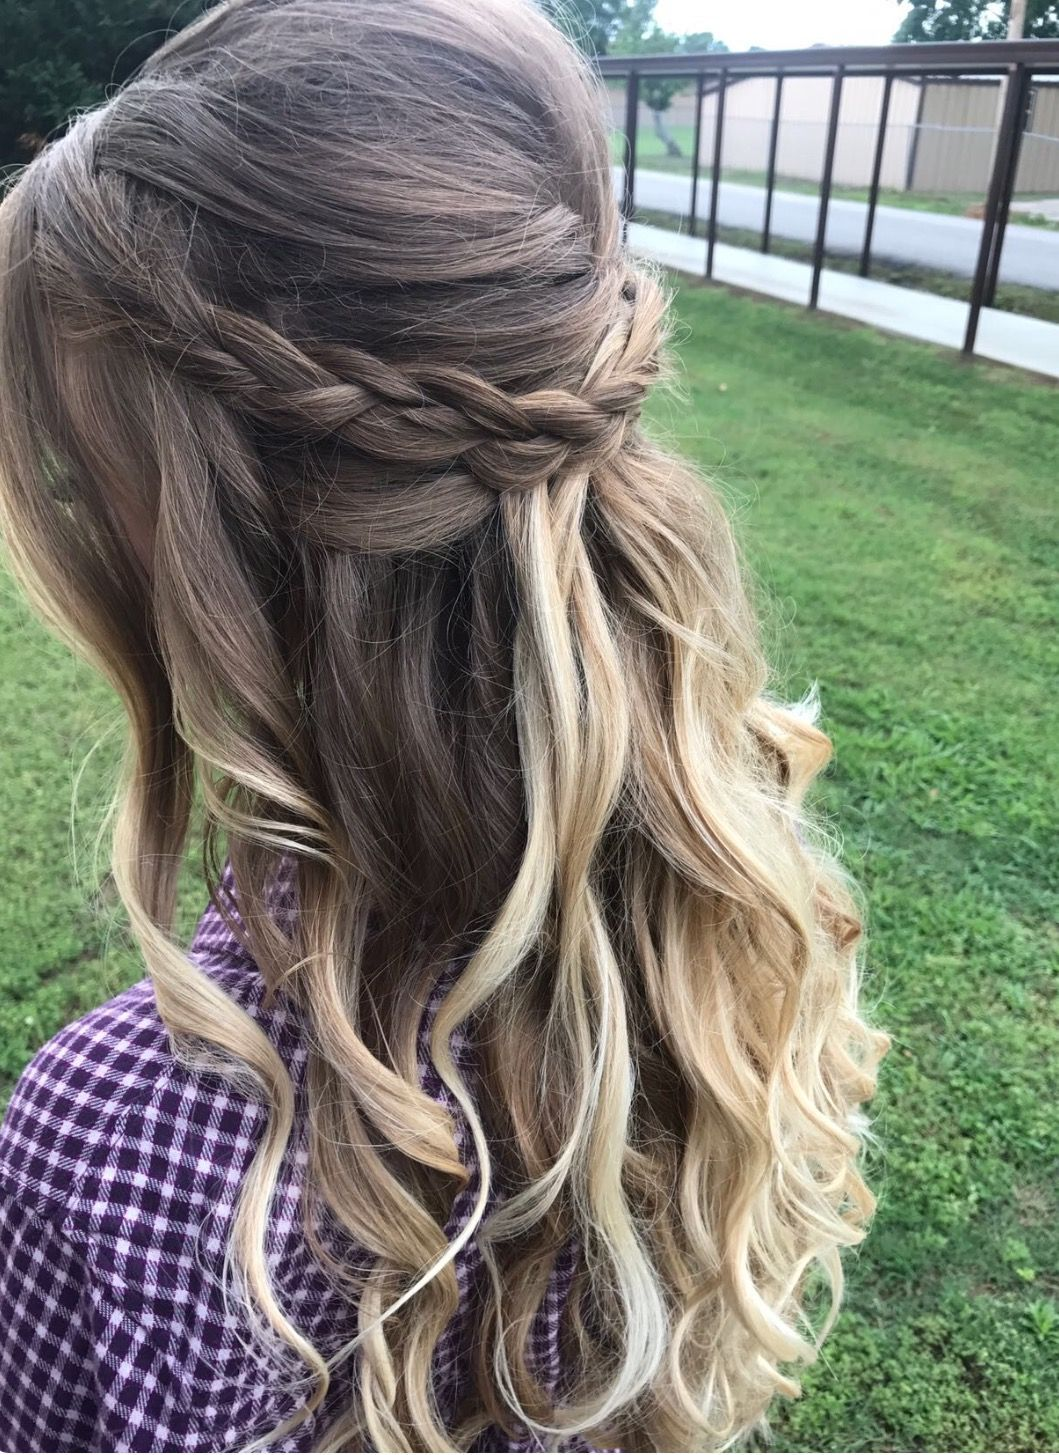 195 Best Formal Hairstyles For Shoulder Length Hair Formal Hairstyles Length Shoulder Wedding Hair Down Braids With Curls Medium Hair Styles